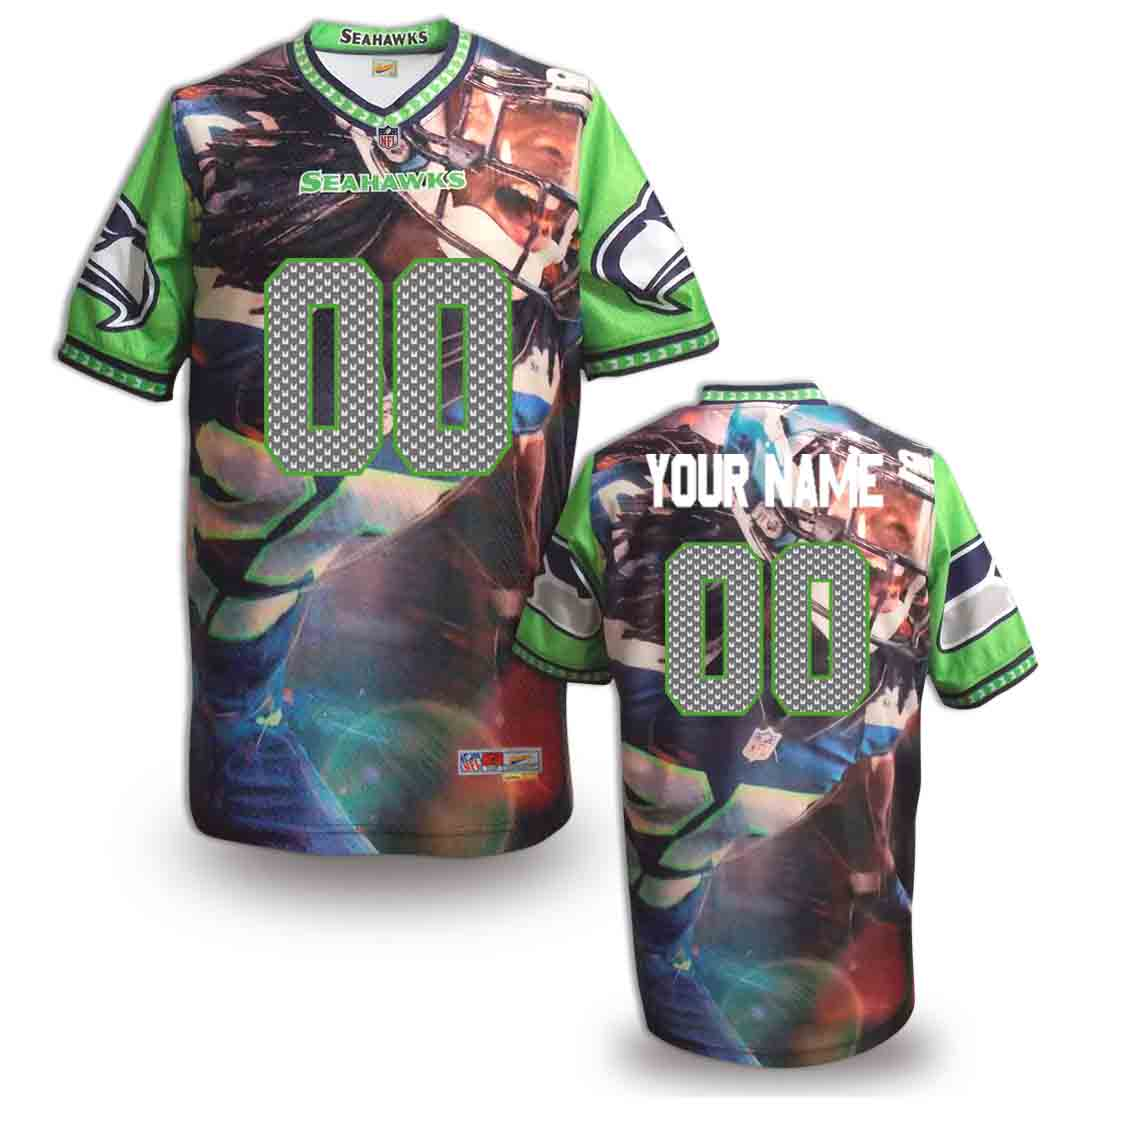 Nike Seahawks Customized Fashion Stitched Jerseys01